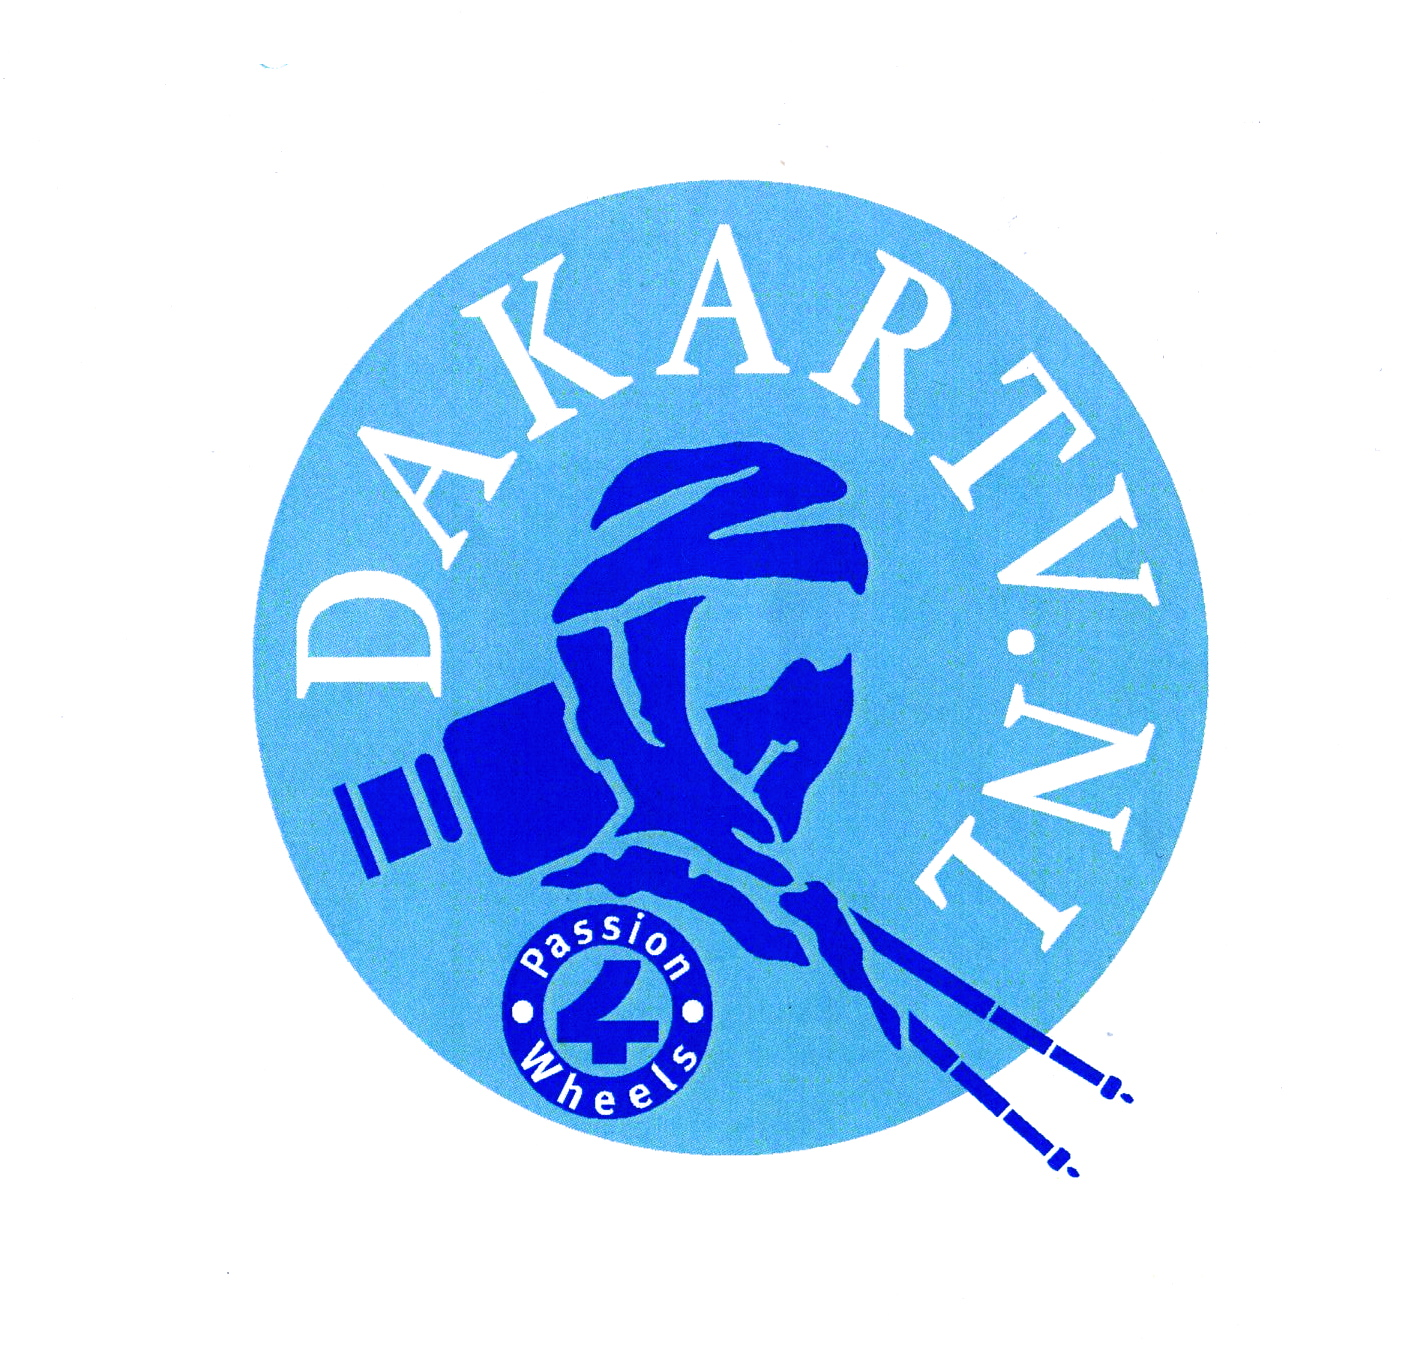 Dakar TV.NL   blue on blue